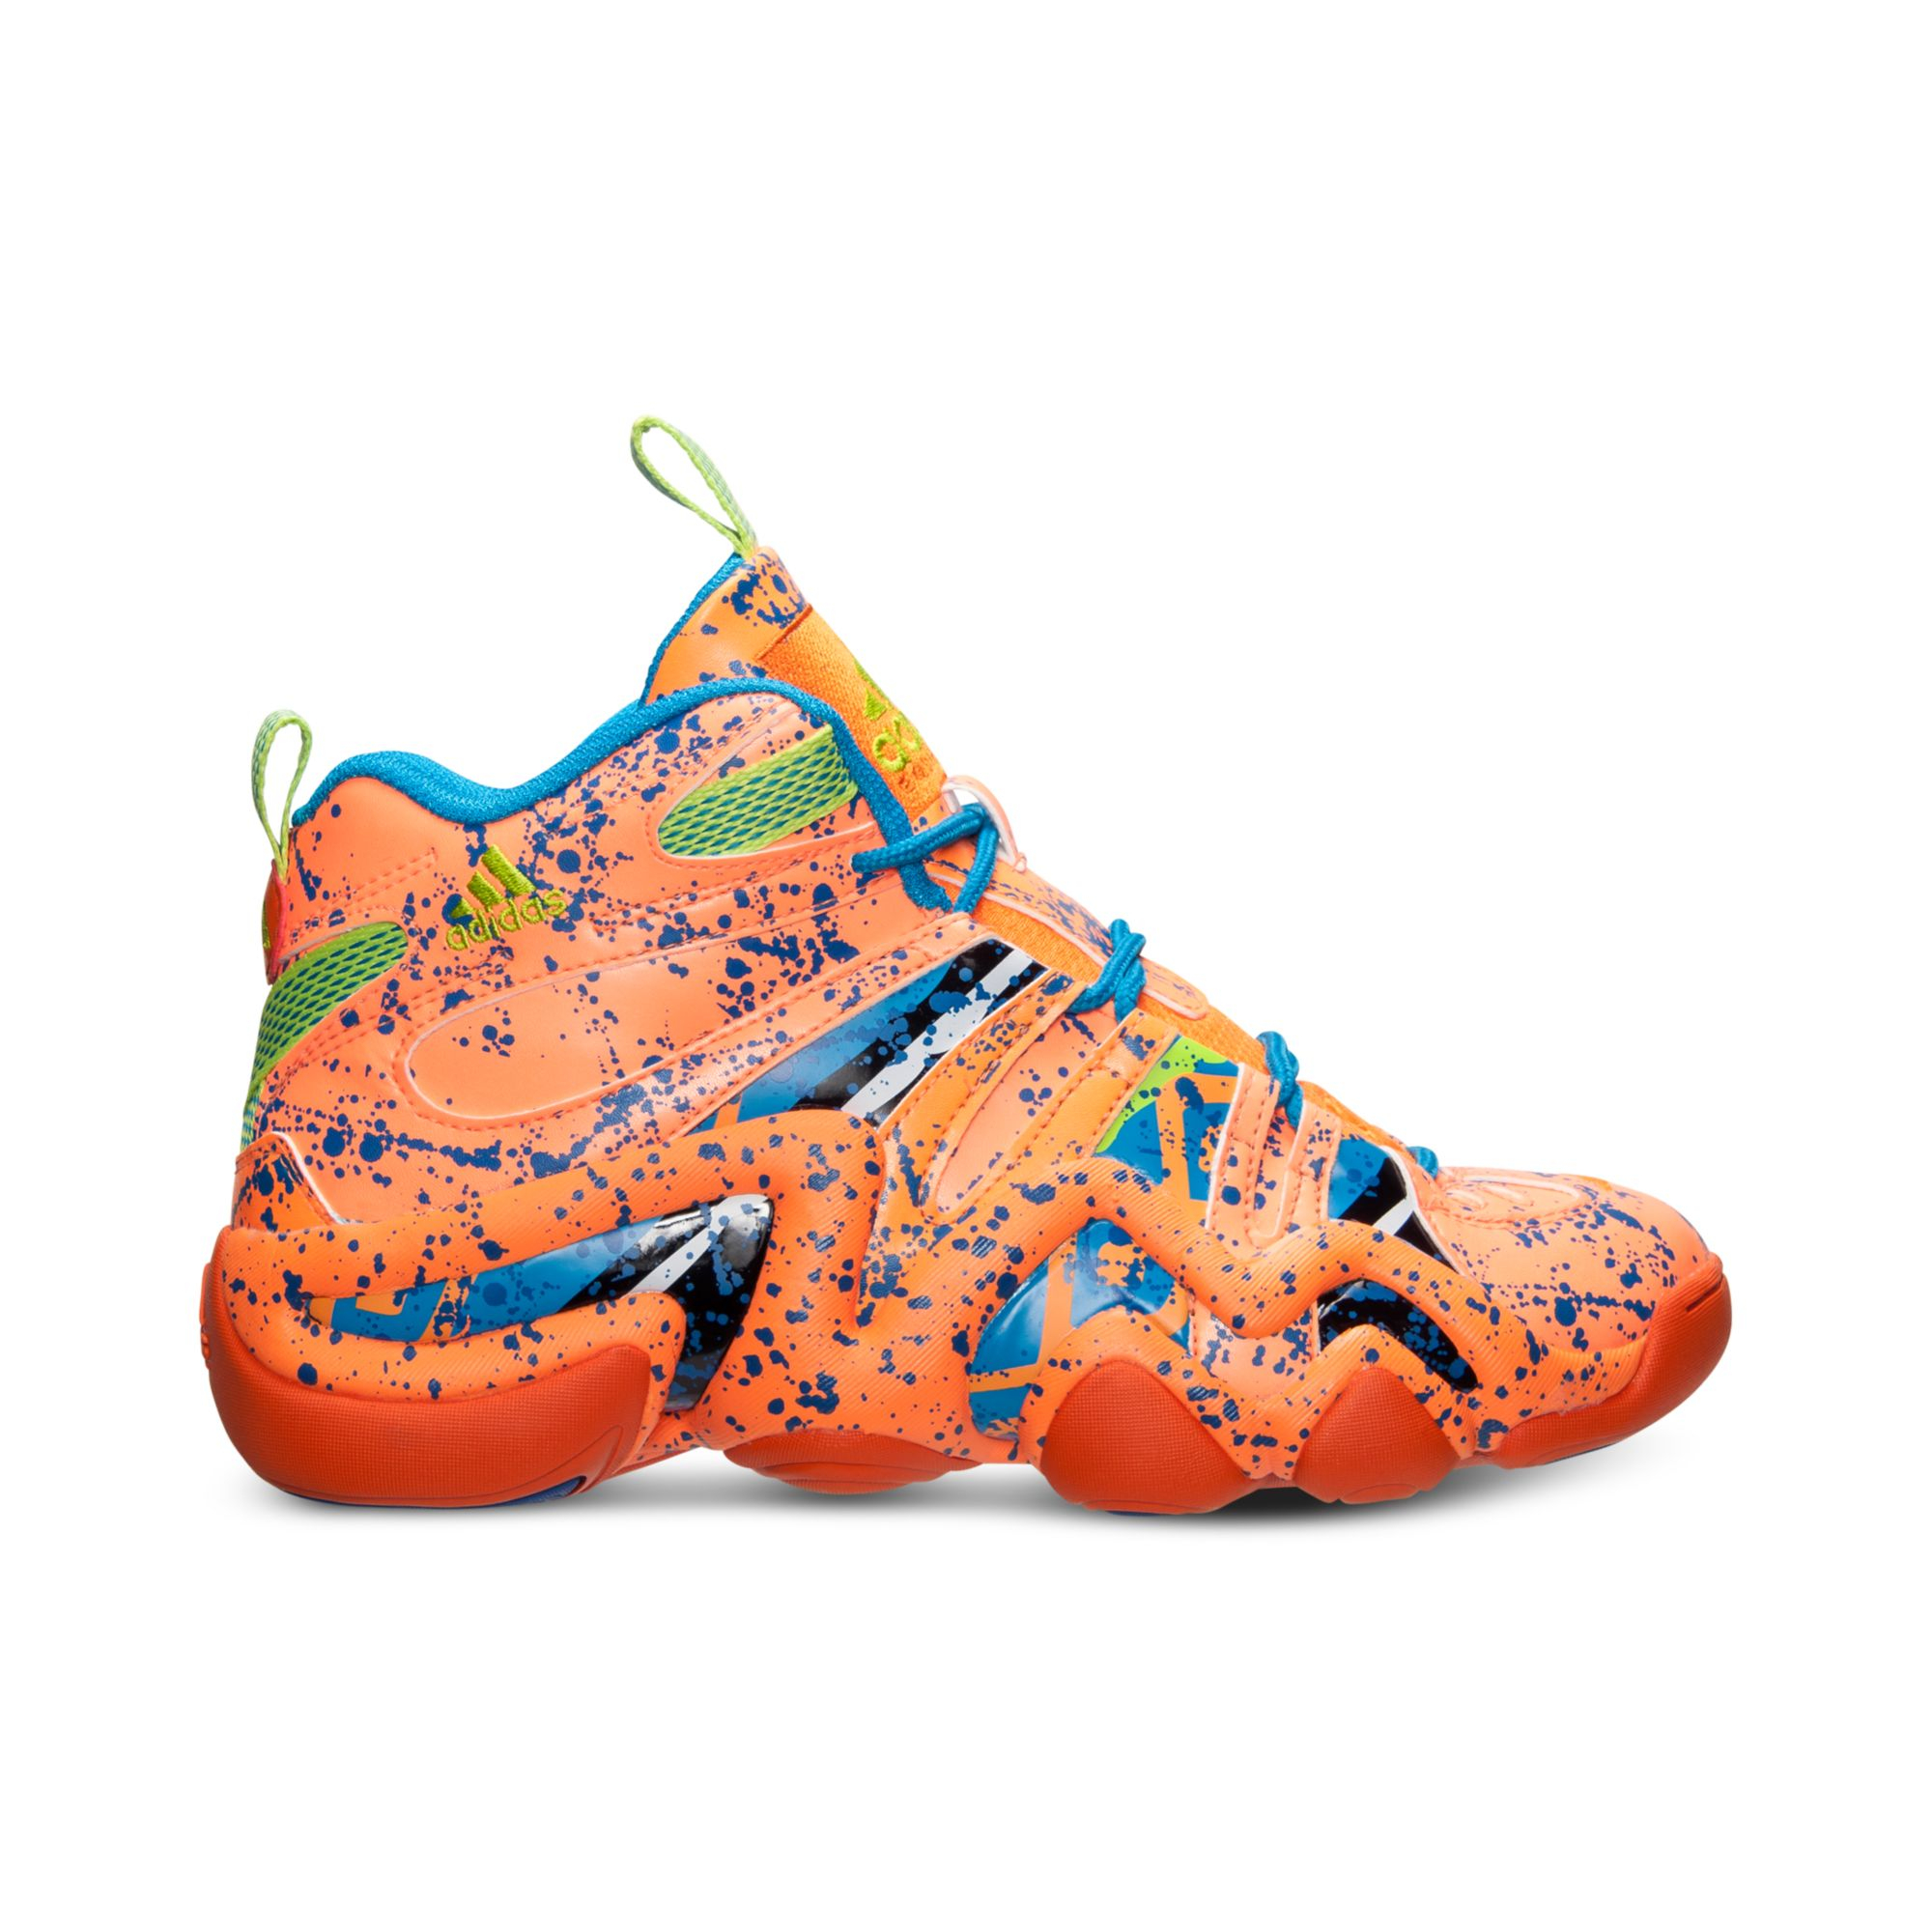 Lyst - Adidas Mens Crazy 8 Basketball Sneakers From Finish ...